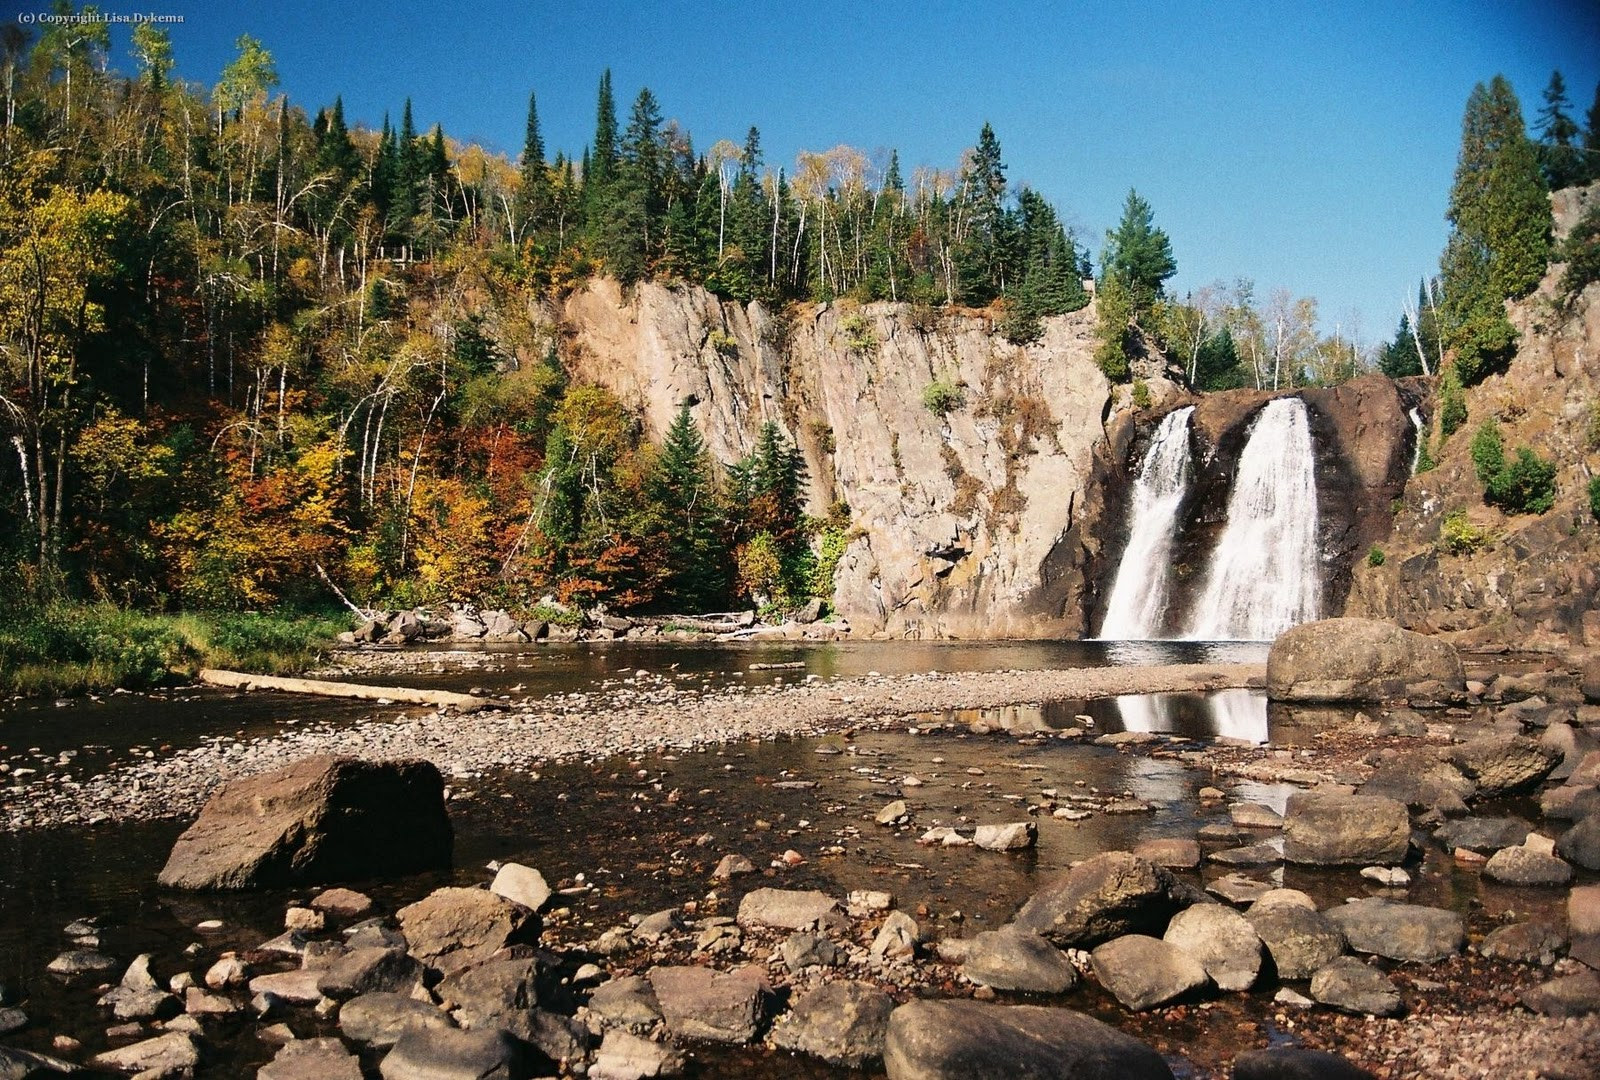 Collective memoirs of a camping Junkie: Tettegouche State Park